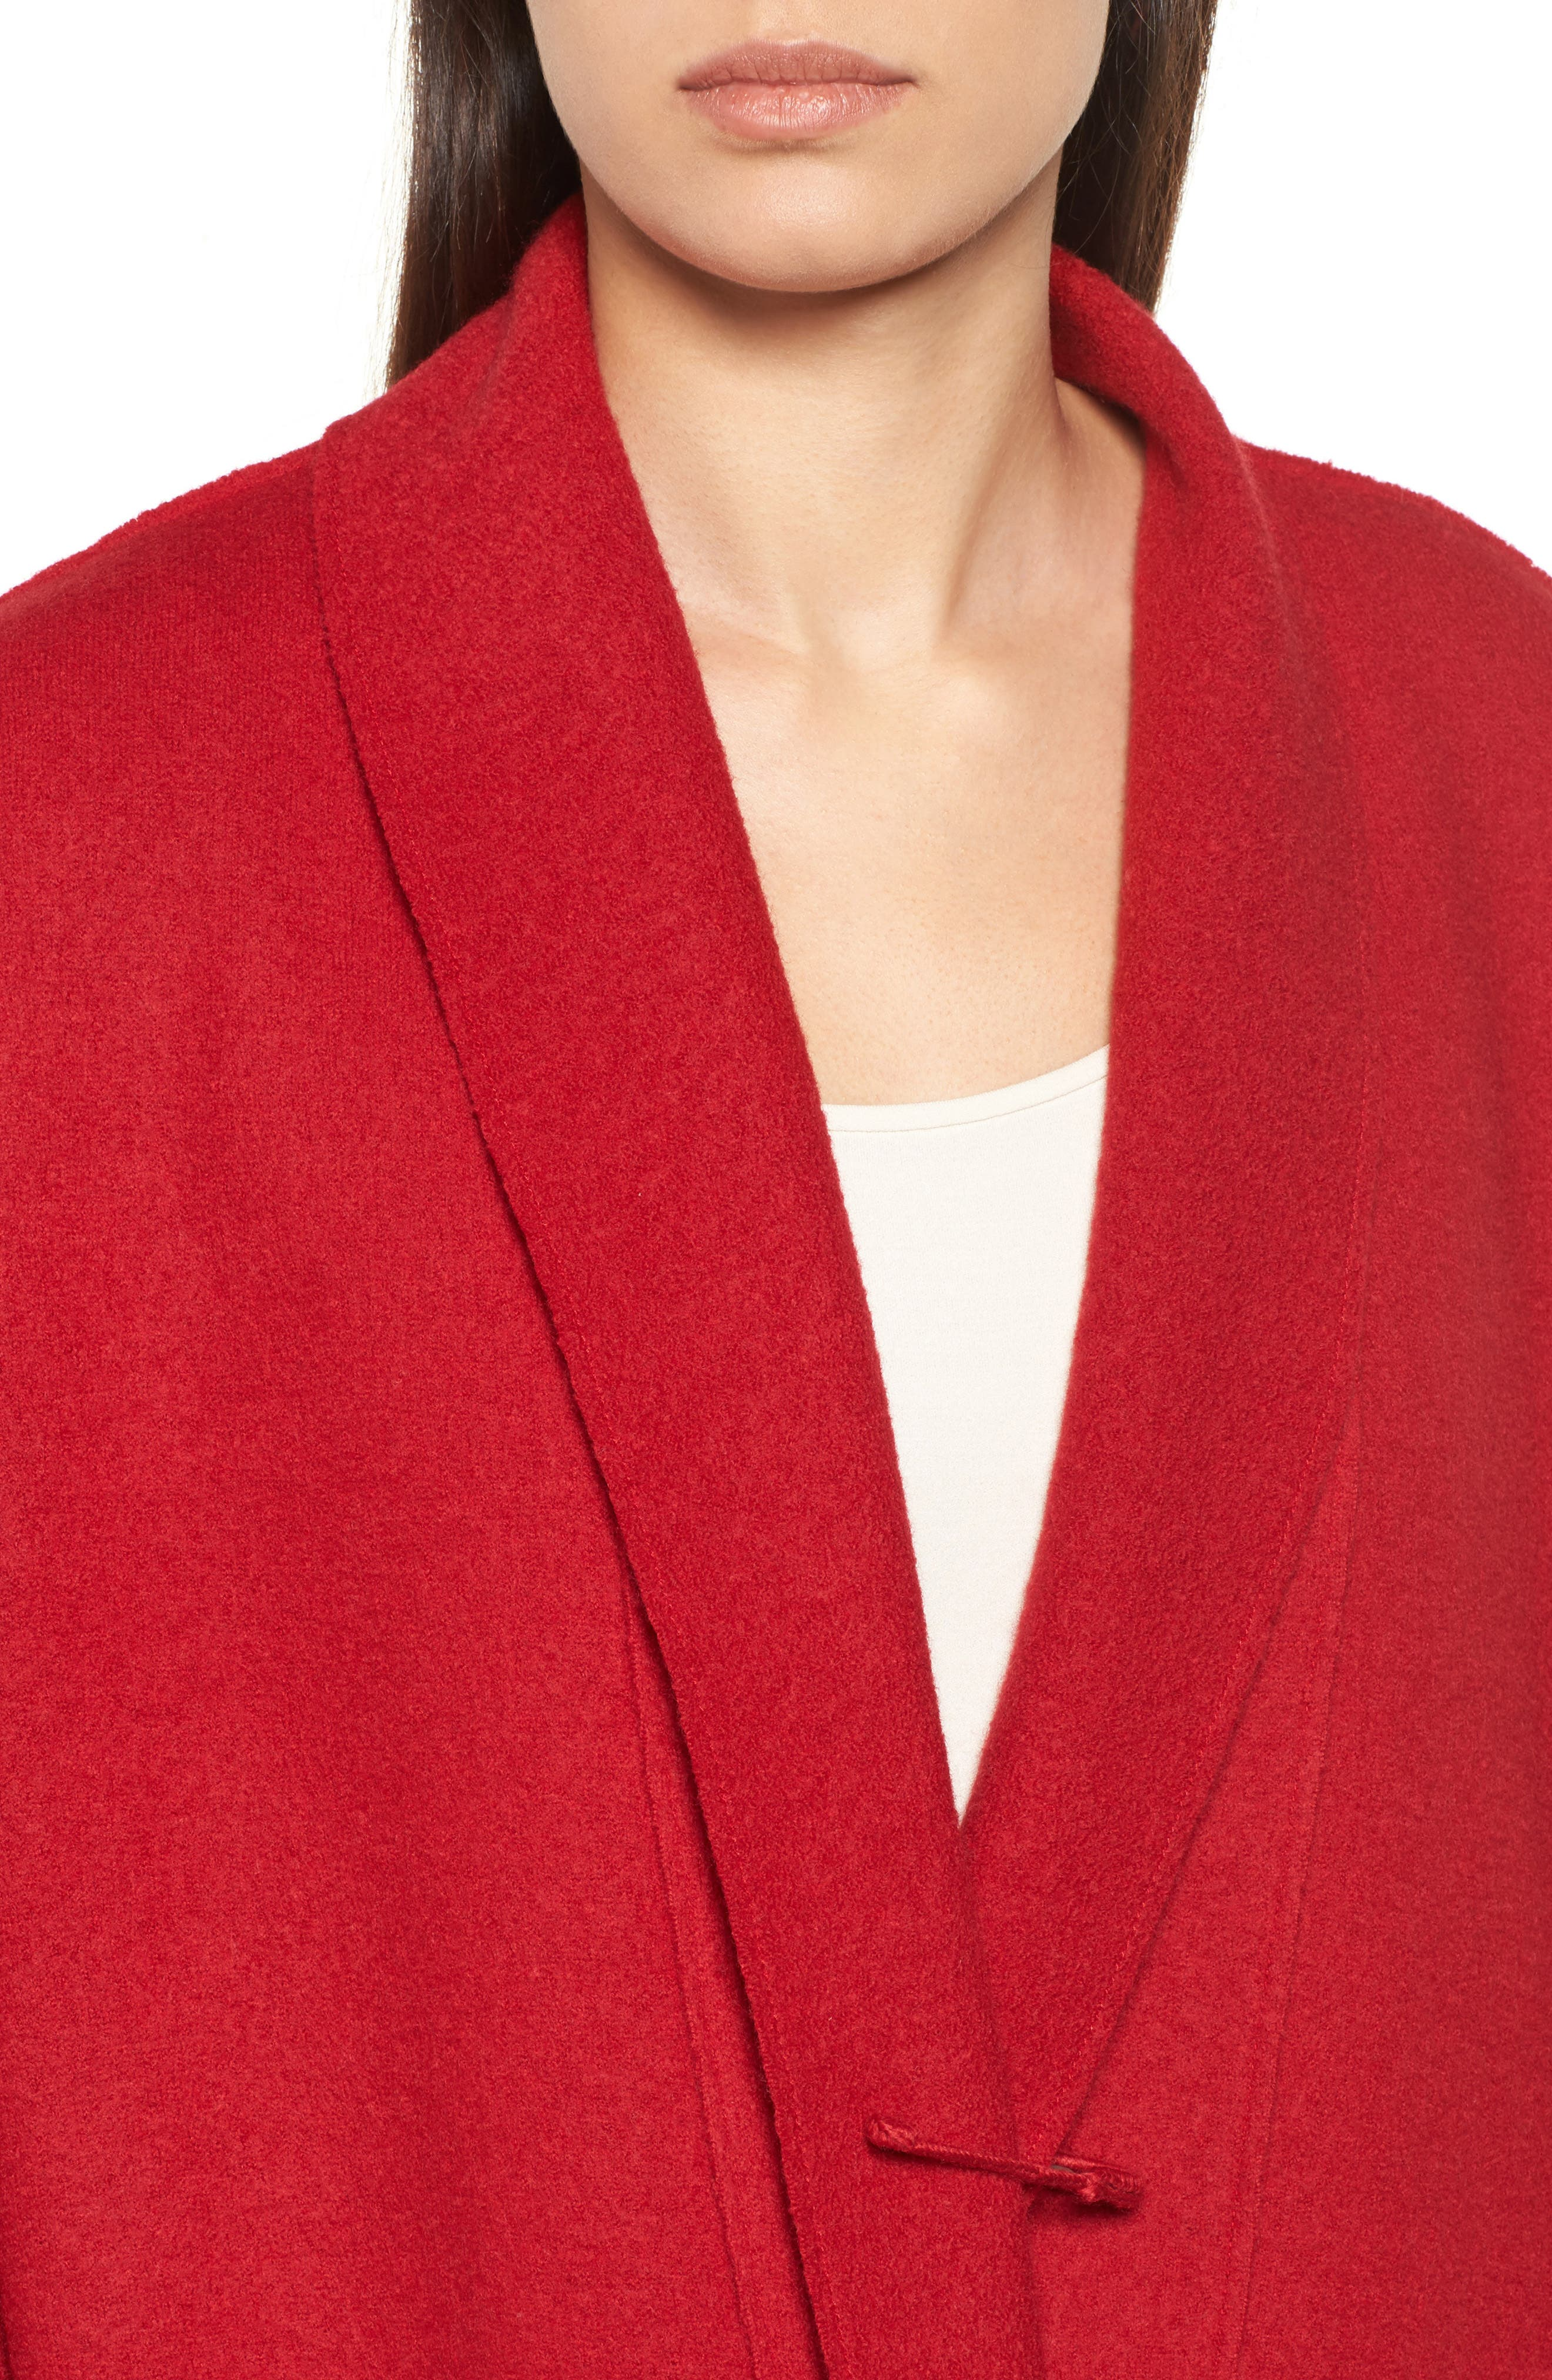 Boiled Wool Shawl Collar Jacket,                             Alternate thumbnail 5, color,                             Lacquer